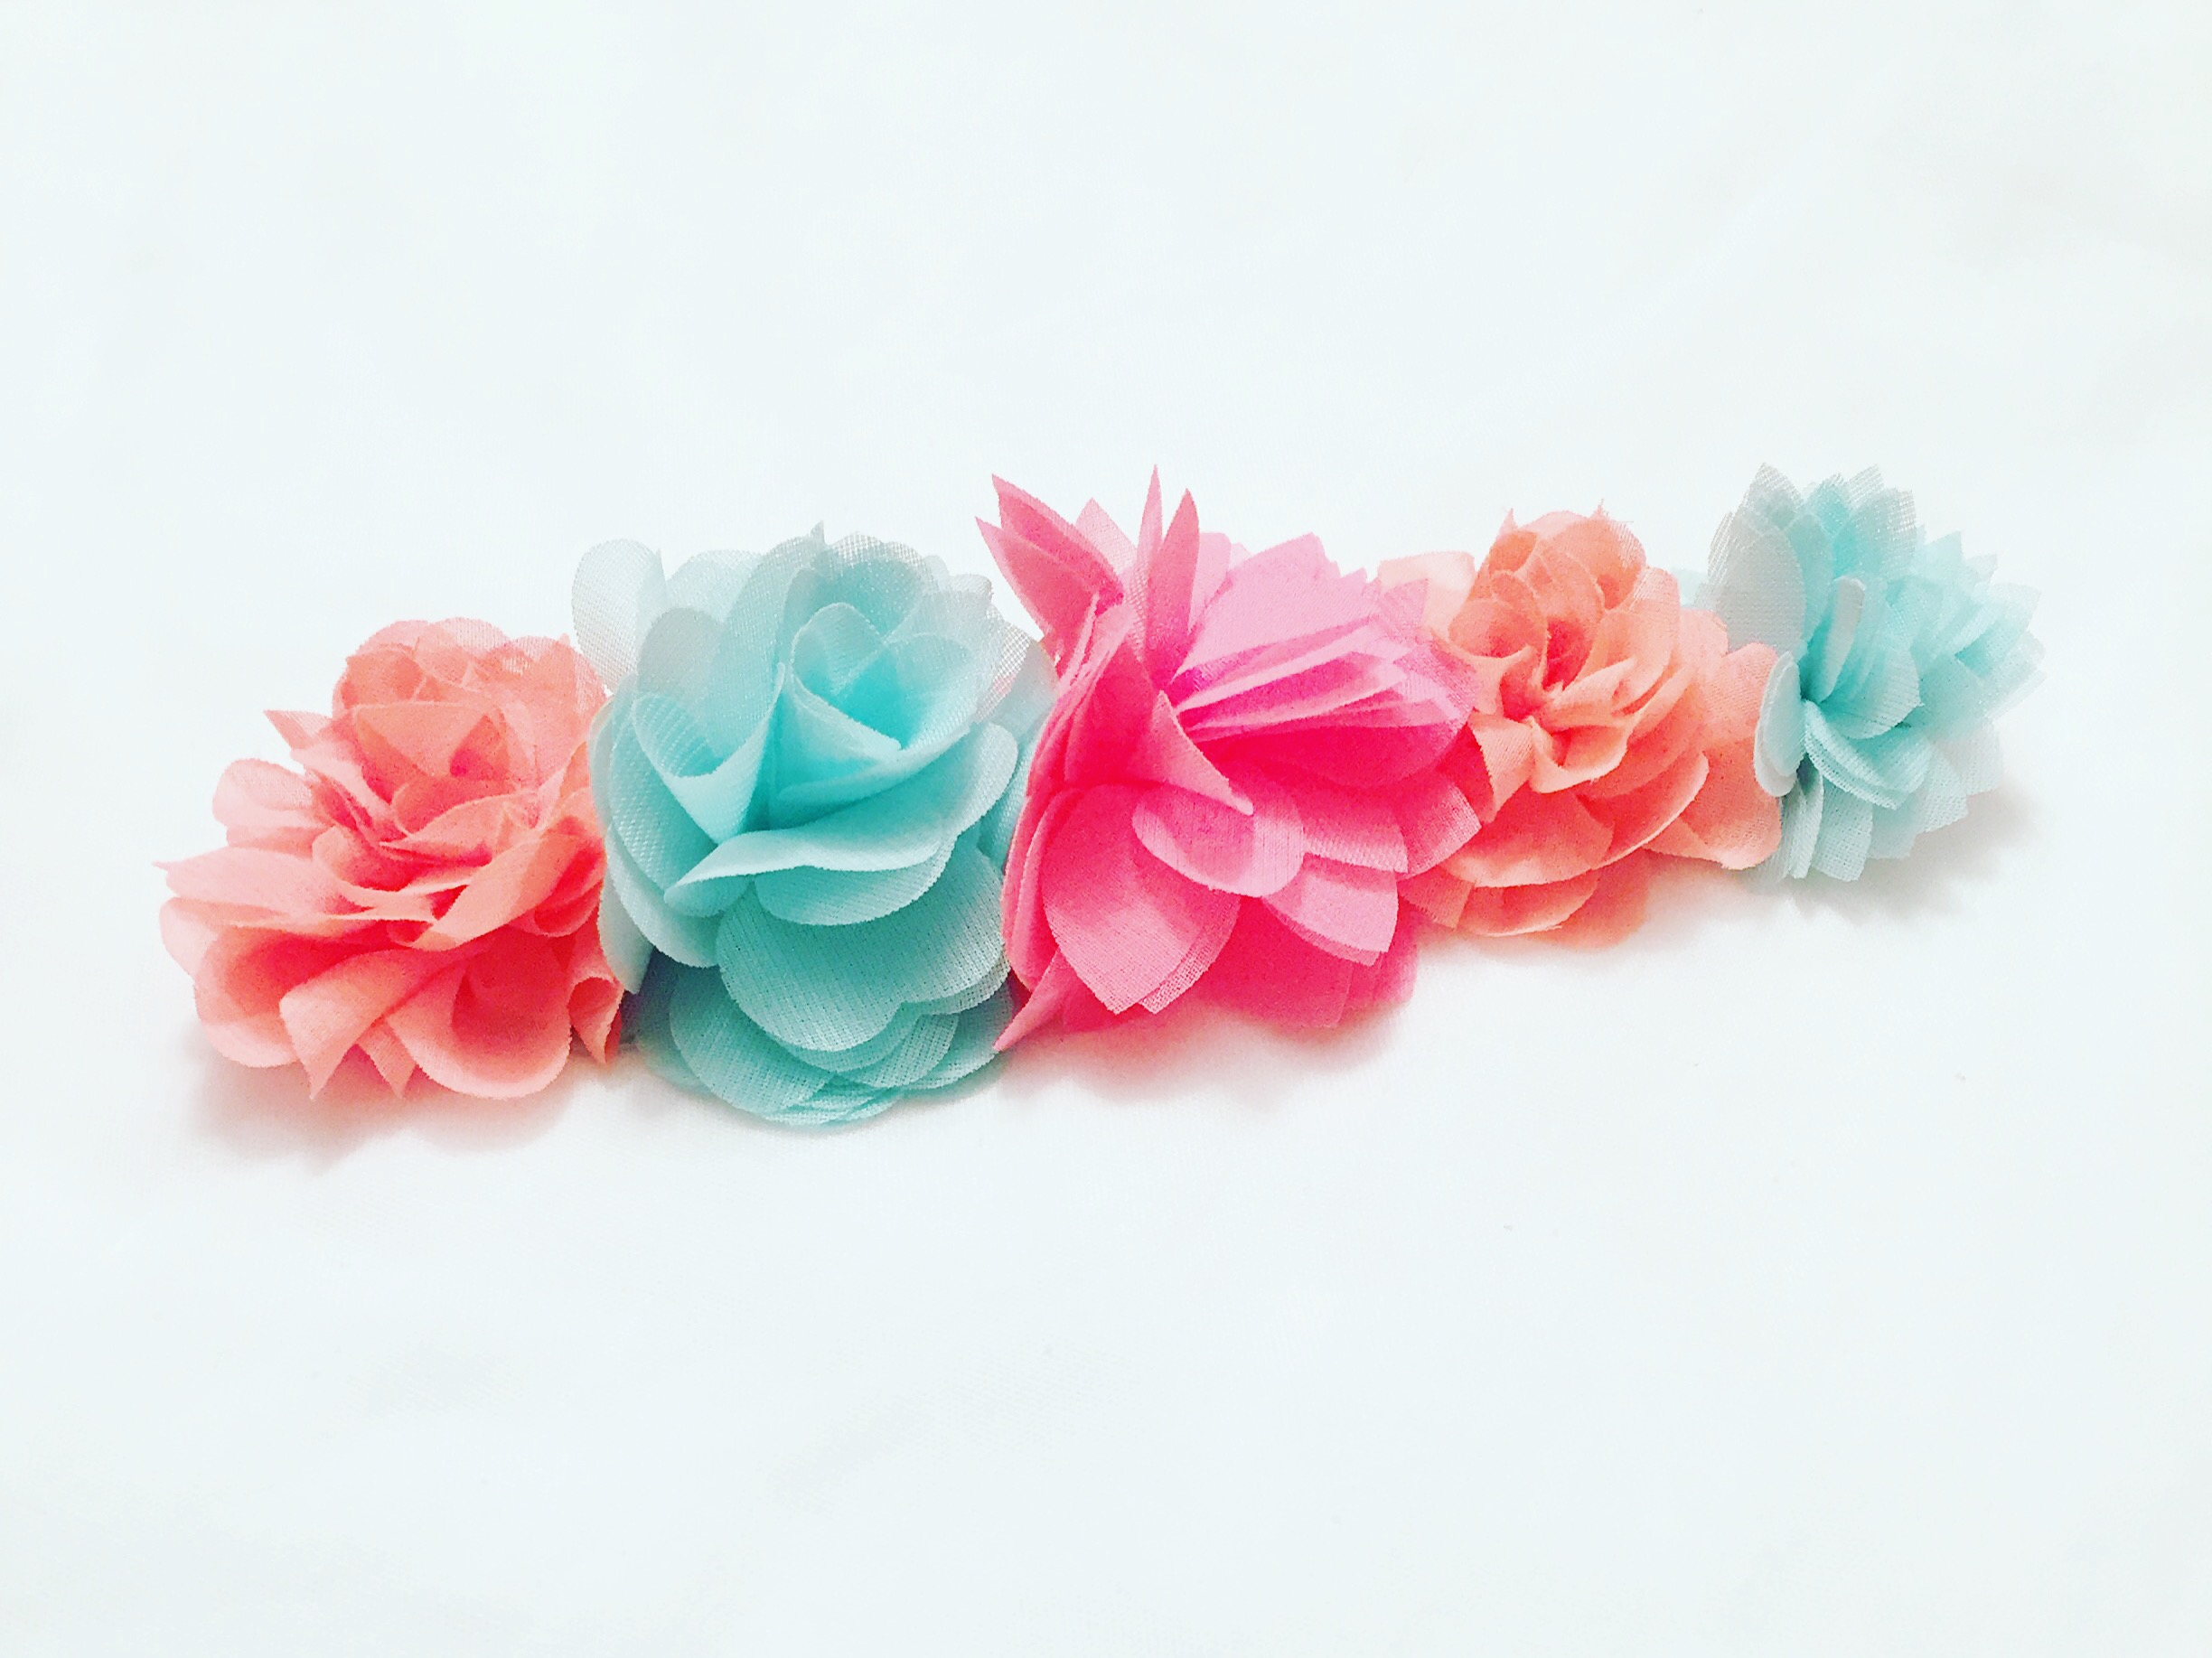 Baby is ready for Coachella with this flower headband. #flowercrown